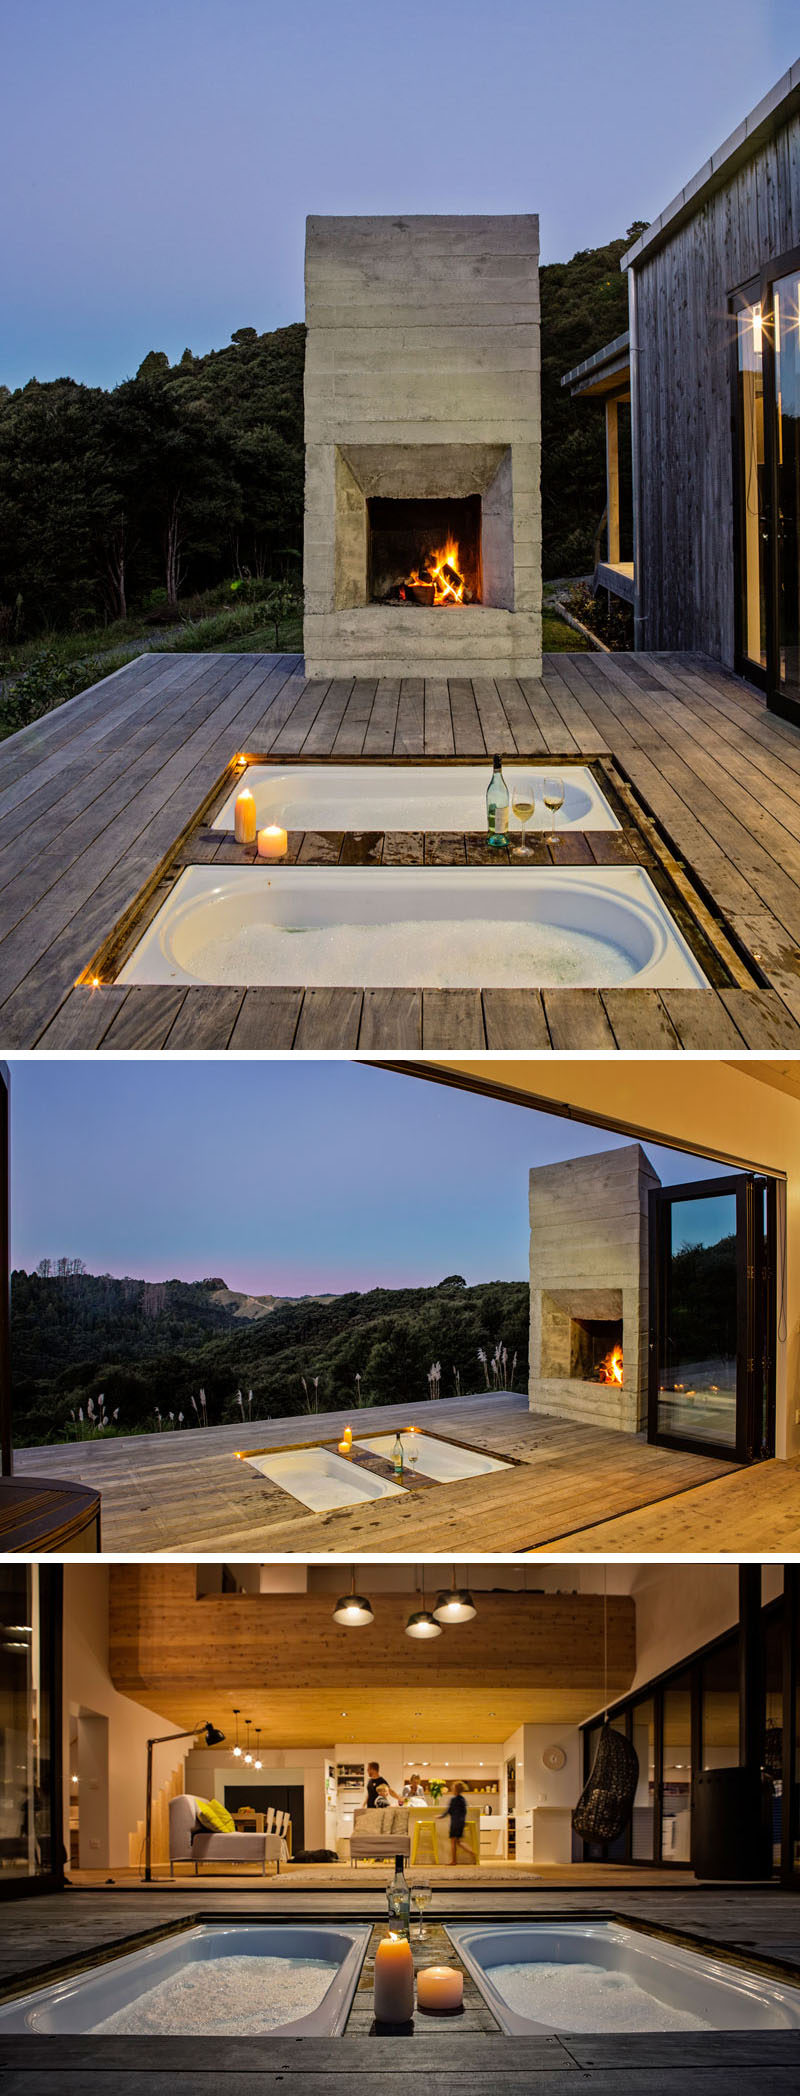 This modern house has an outdoor deck with a board-formed concrete fireplace and sunken bathtubs. #SunkenBathtub #OutdoorBathtub #OutdoorFireplace #ConcreteFireplace